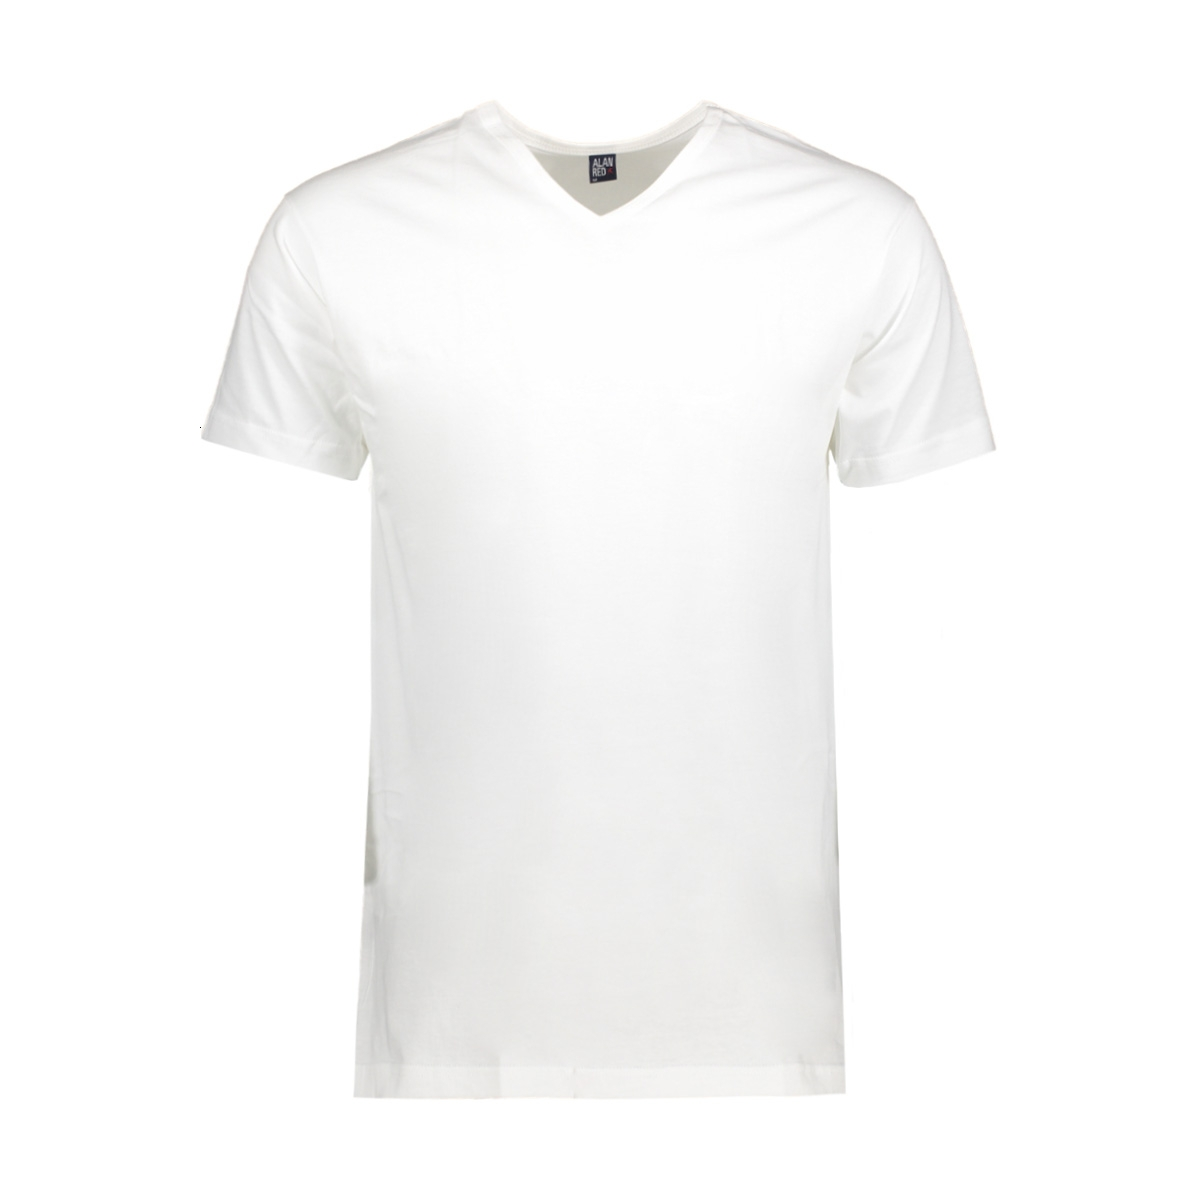 6671 vermont 2-pack alan red t-shirt white